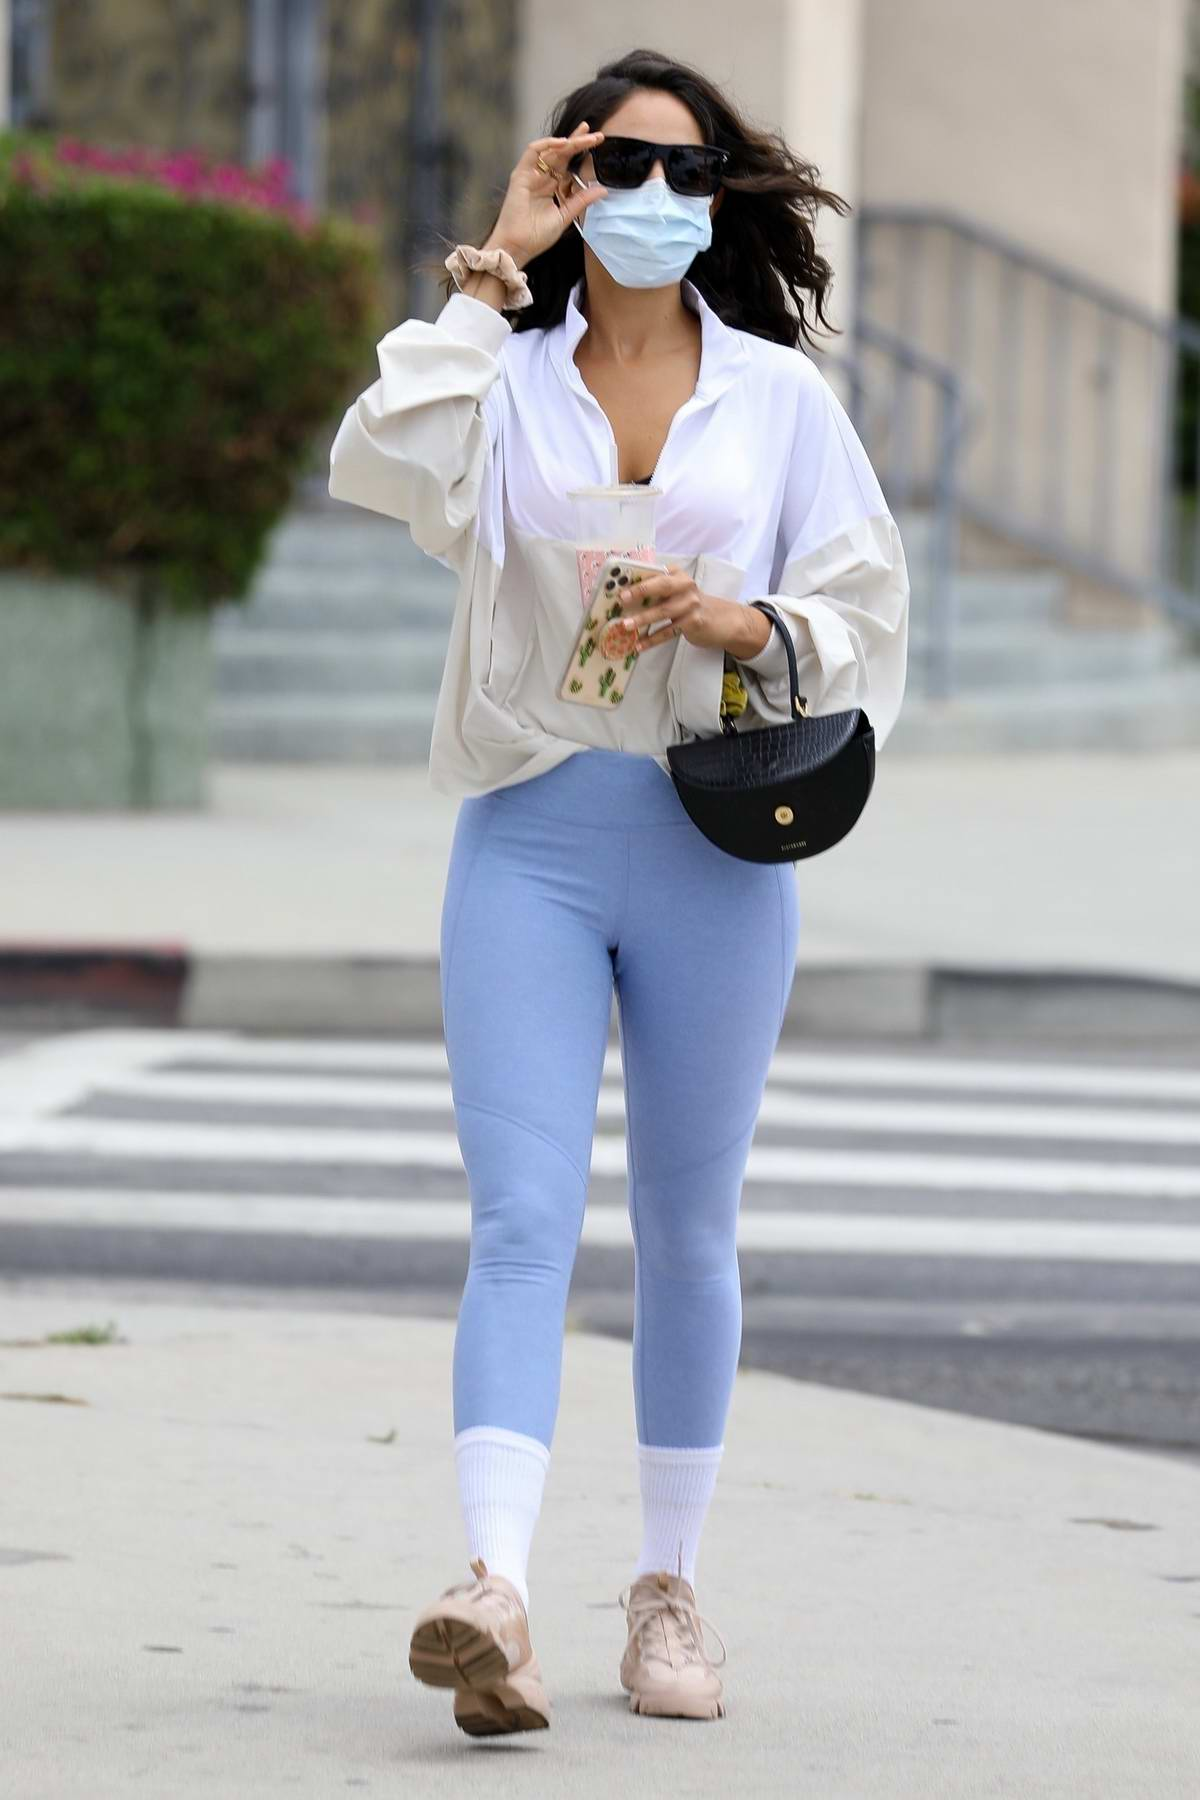 Eiza Gonzalez looks fab in a white shirt and blue leggings as she heads for a lunch date with her friends in Los Angeles